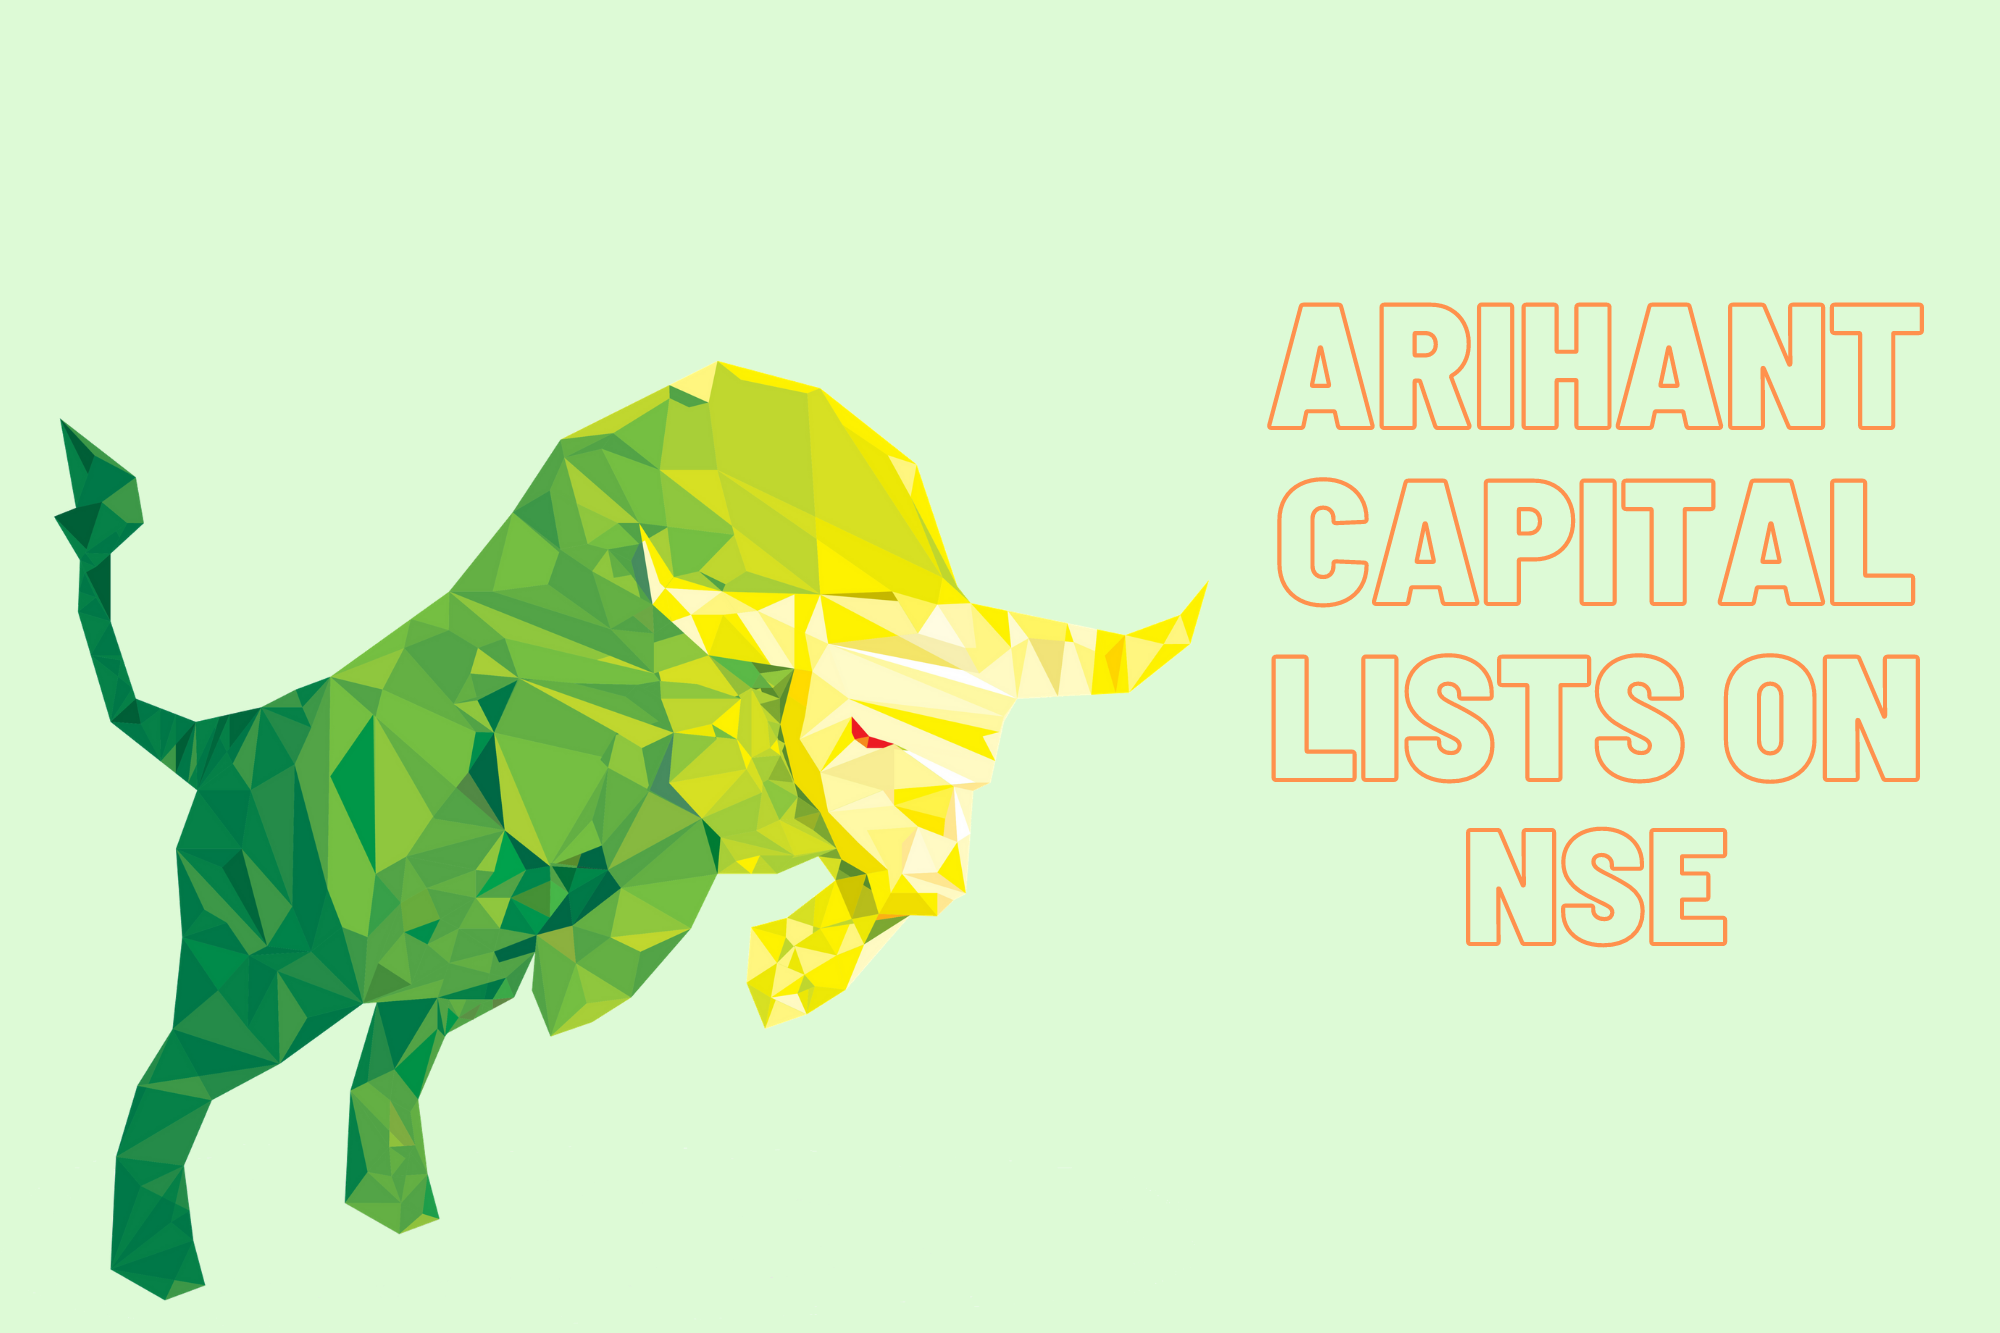 Arihant Capital Markets lists on NSE - National Stock Exchange Listing of Stock Broking Company